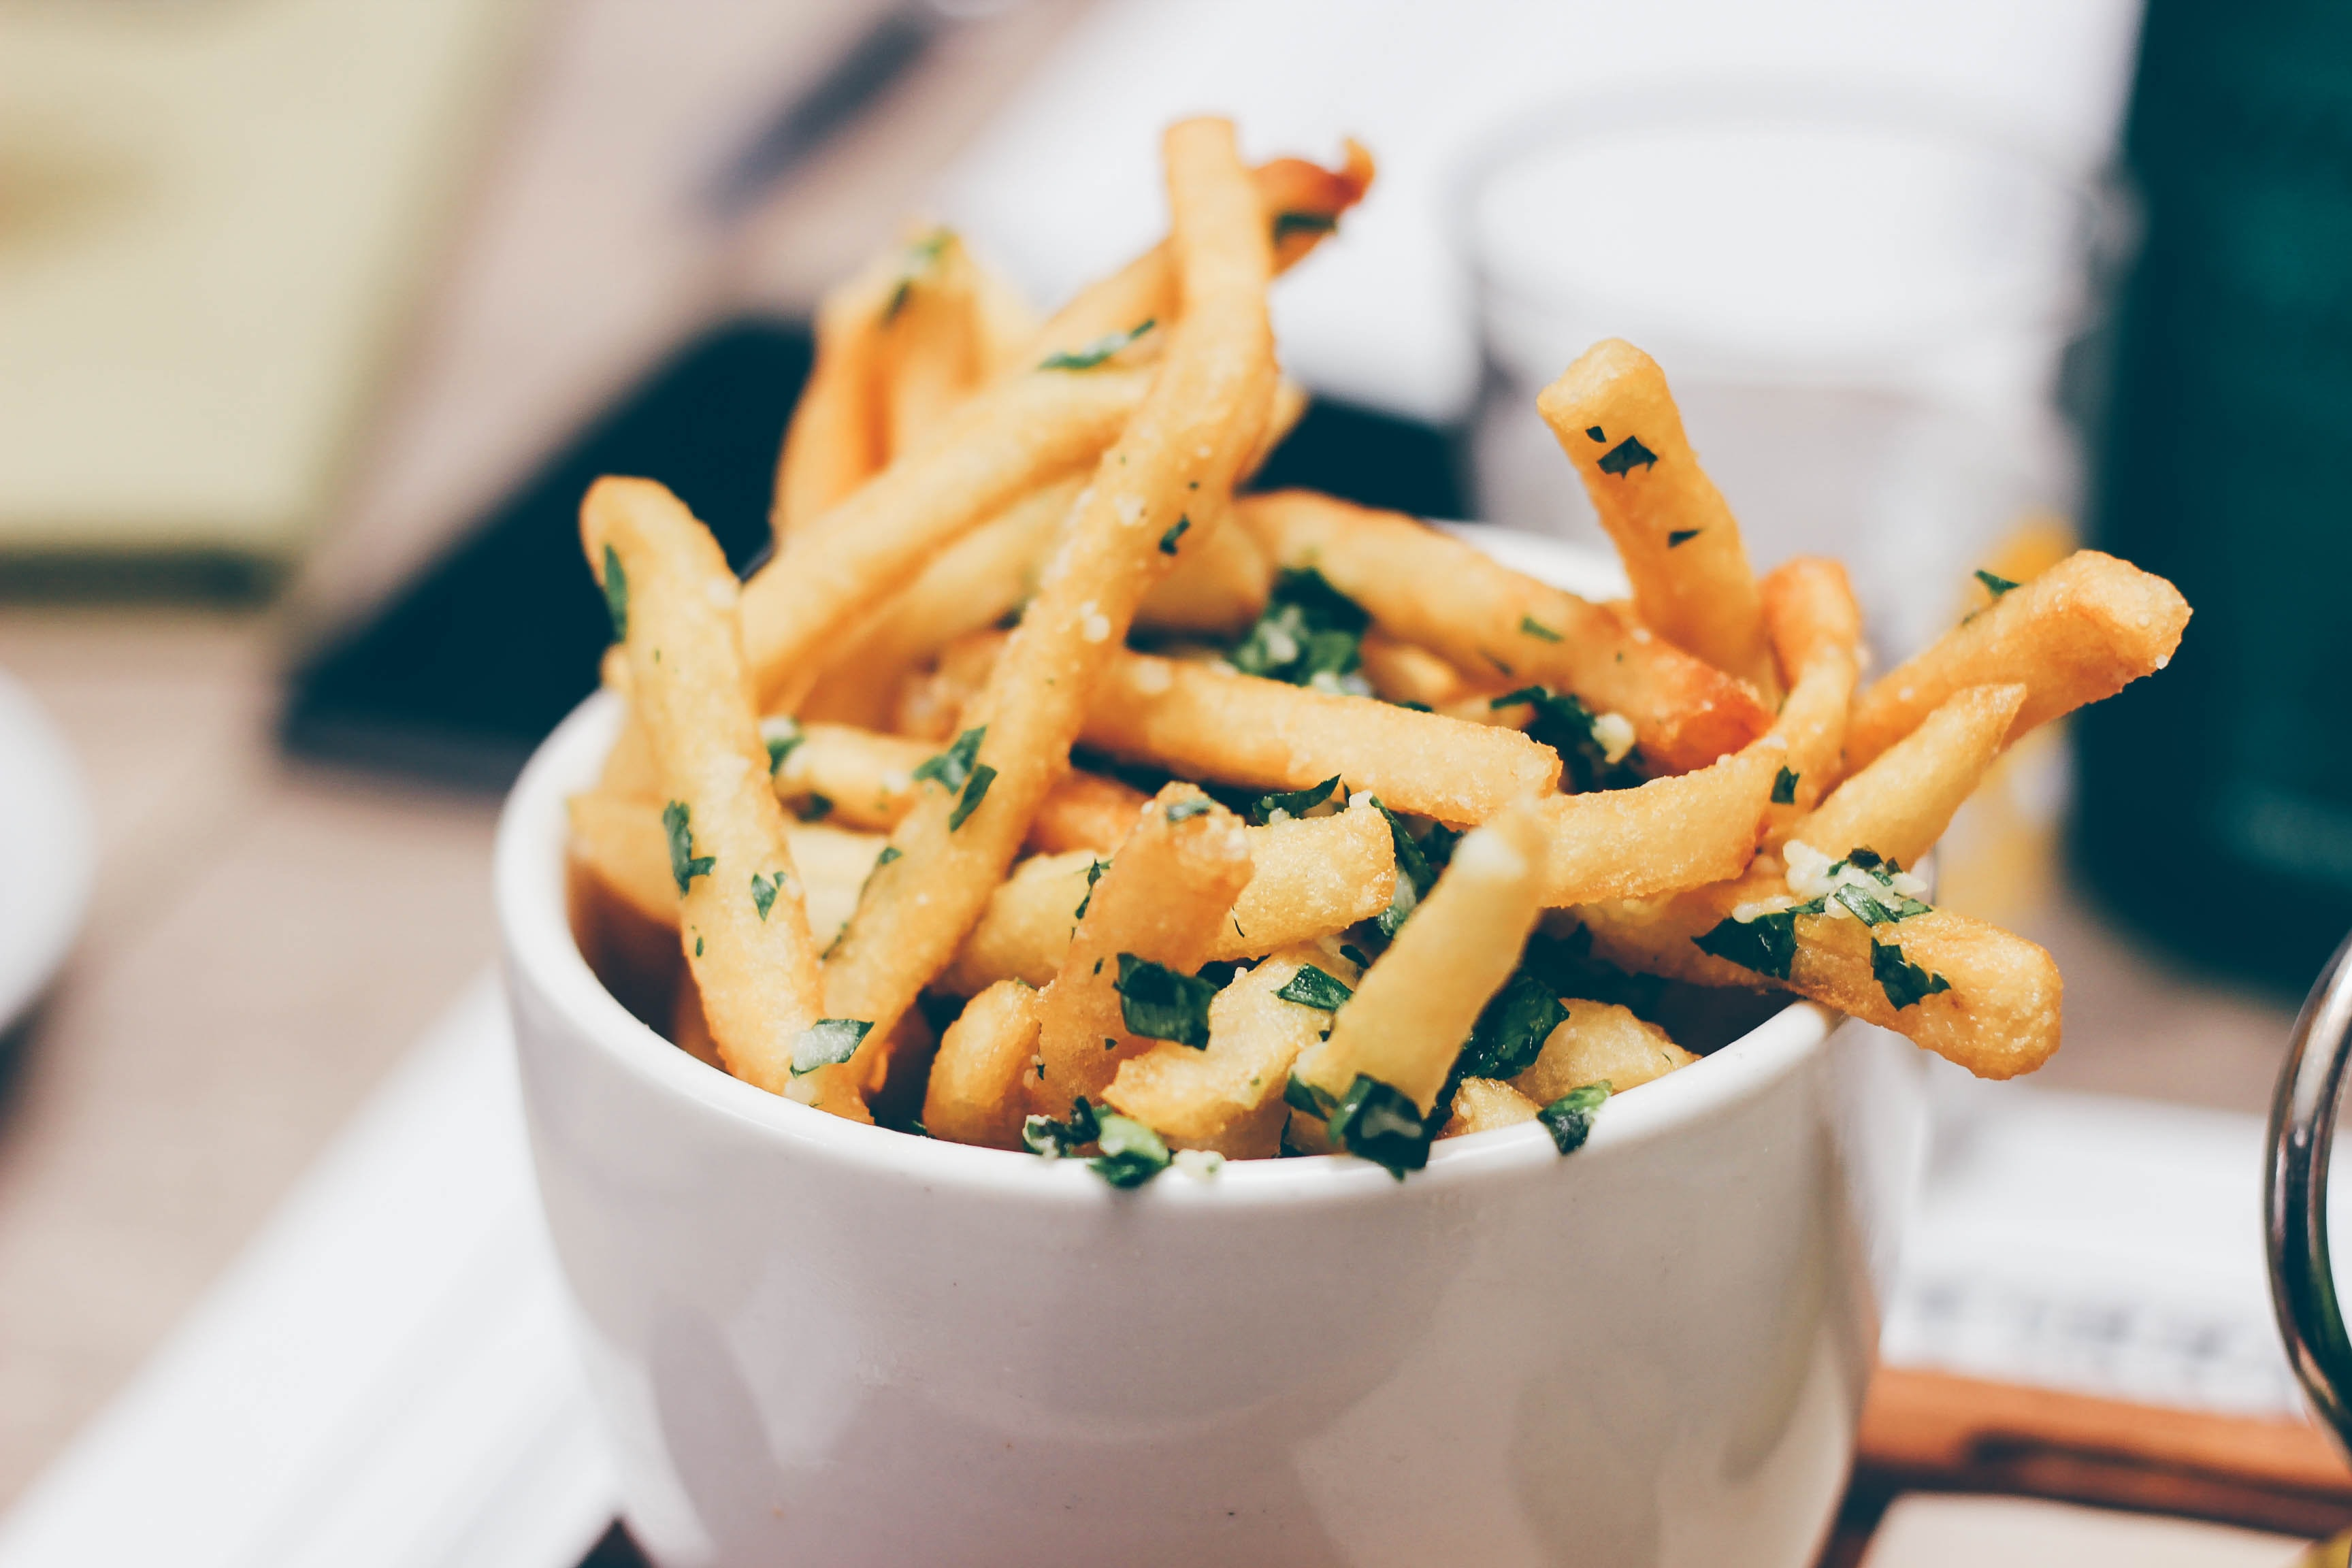 Cup of truffle french fries with herbs and garlic at a restaurant